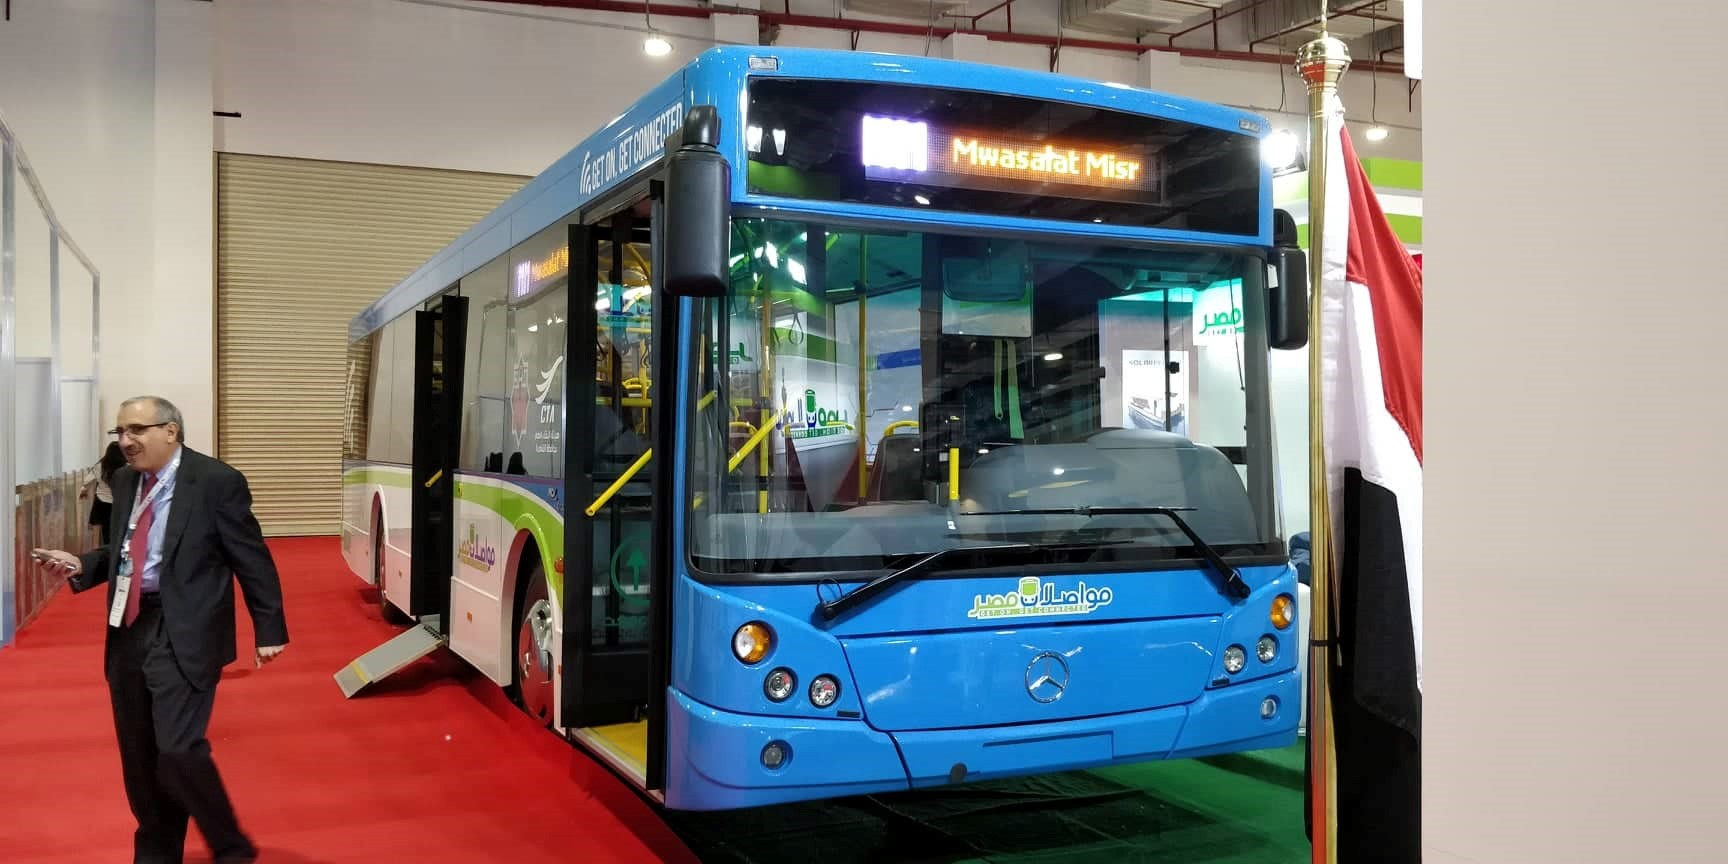 Bus procurement: interview with Mohsen Sabra, CEO of Mwasalat Misr (Egypt)